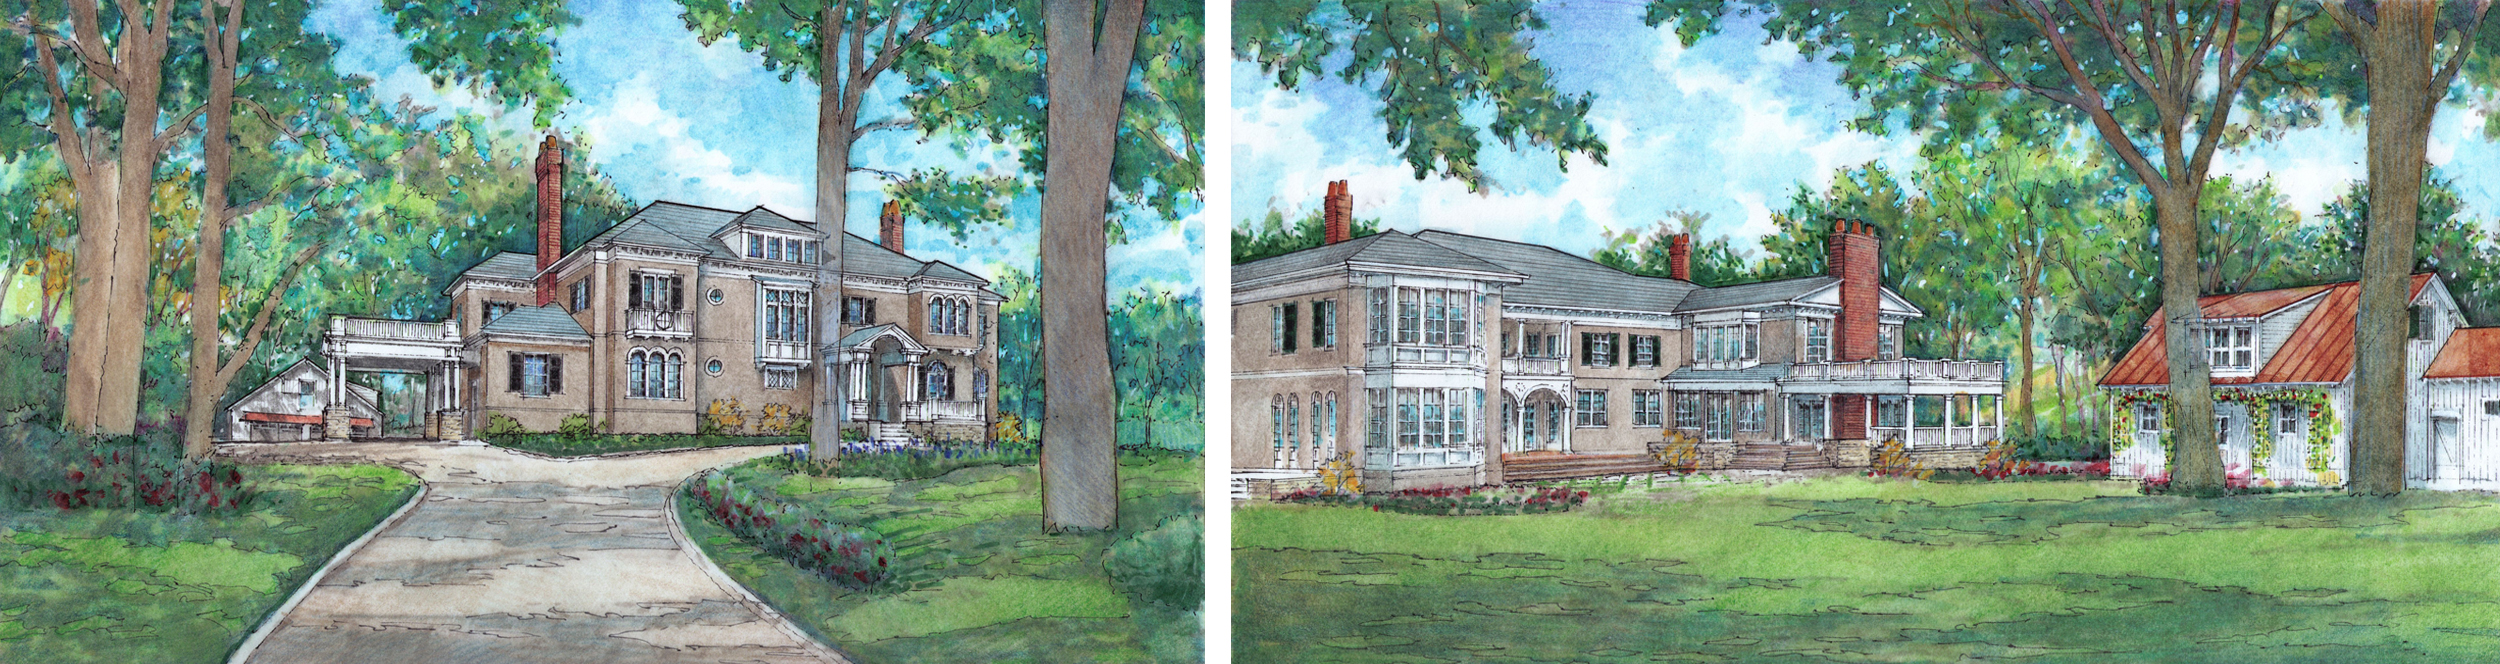 Renderings of new front (with porte-cochere) and back of house, created for variance submittal